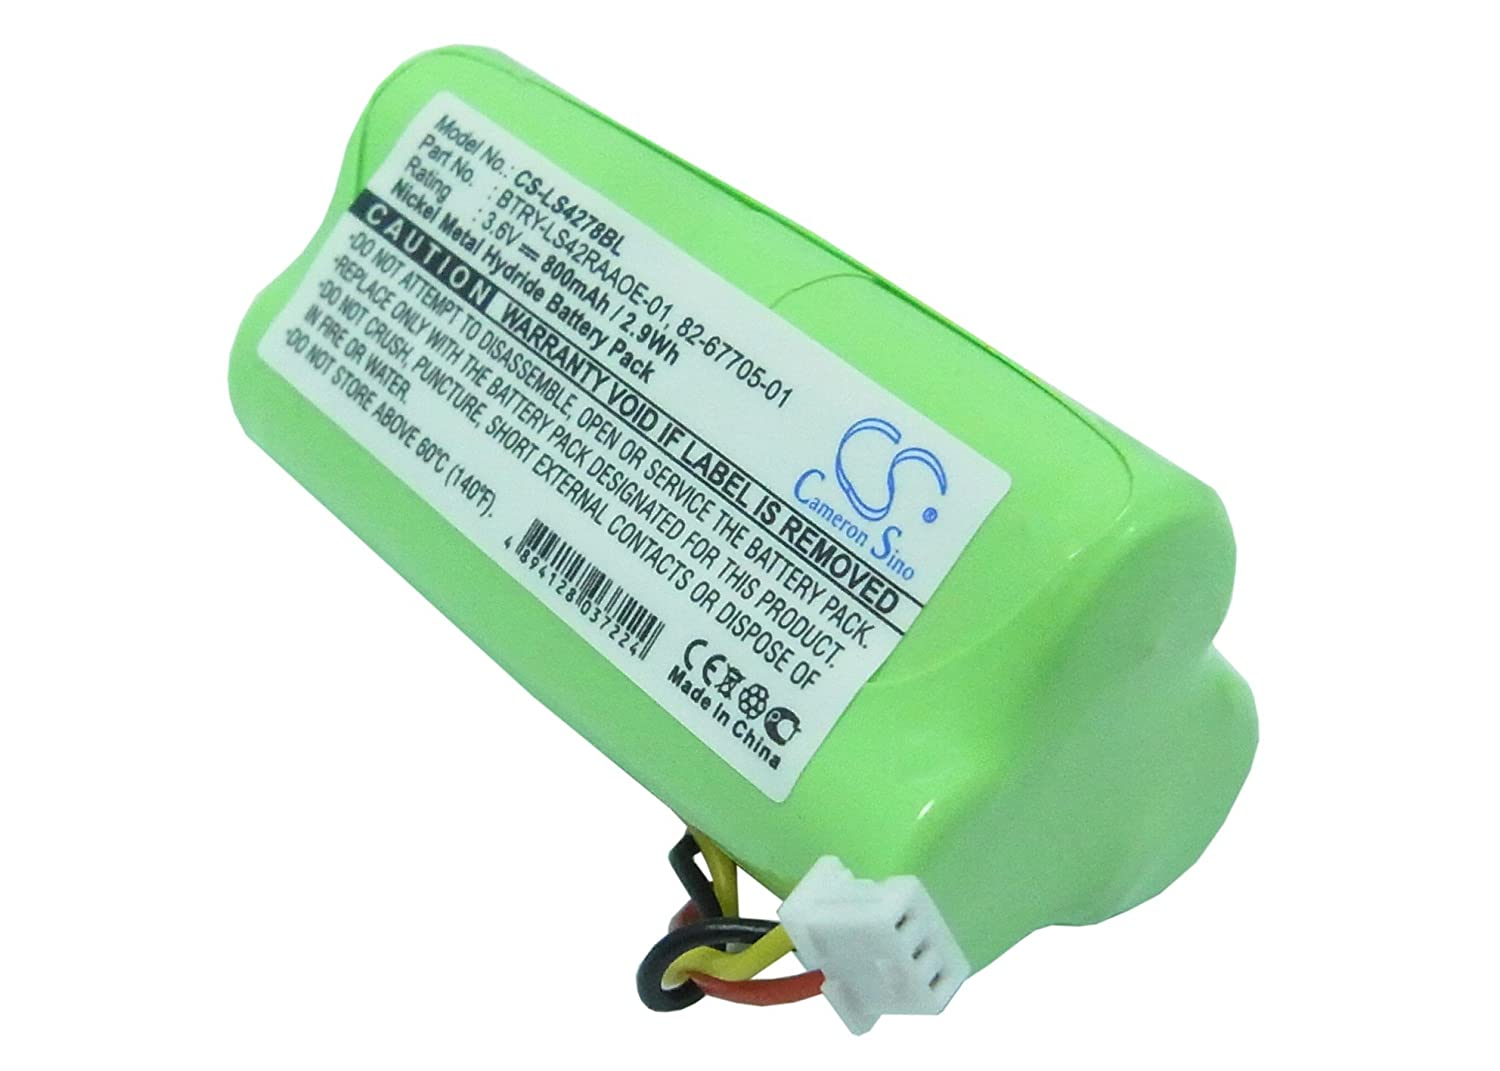 Consumer Electronic Products Symbol 82-67705-01, BTRY-LS42RAAOE-01 800mAh Battery Supply Store VINTRONS P-10-25959